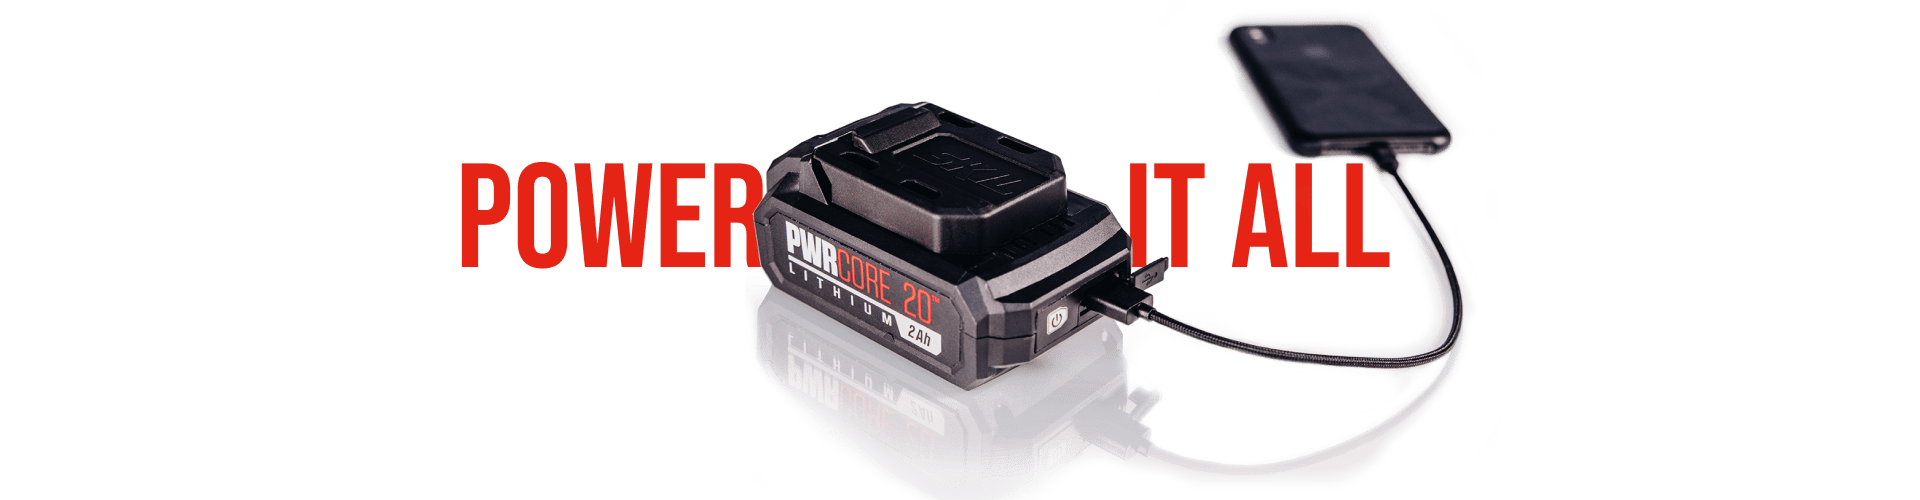 Power it All. PWR CORE 20™ 20V 2Ah Lithium Battery